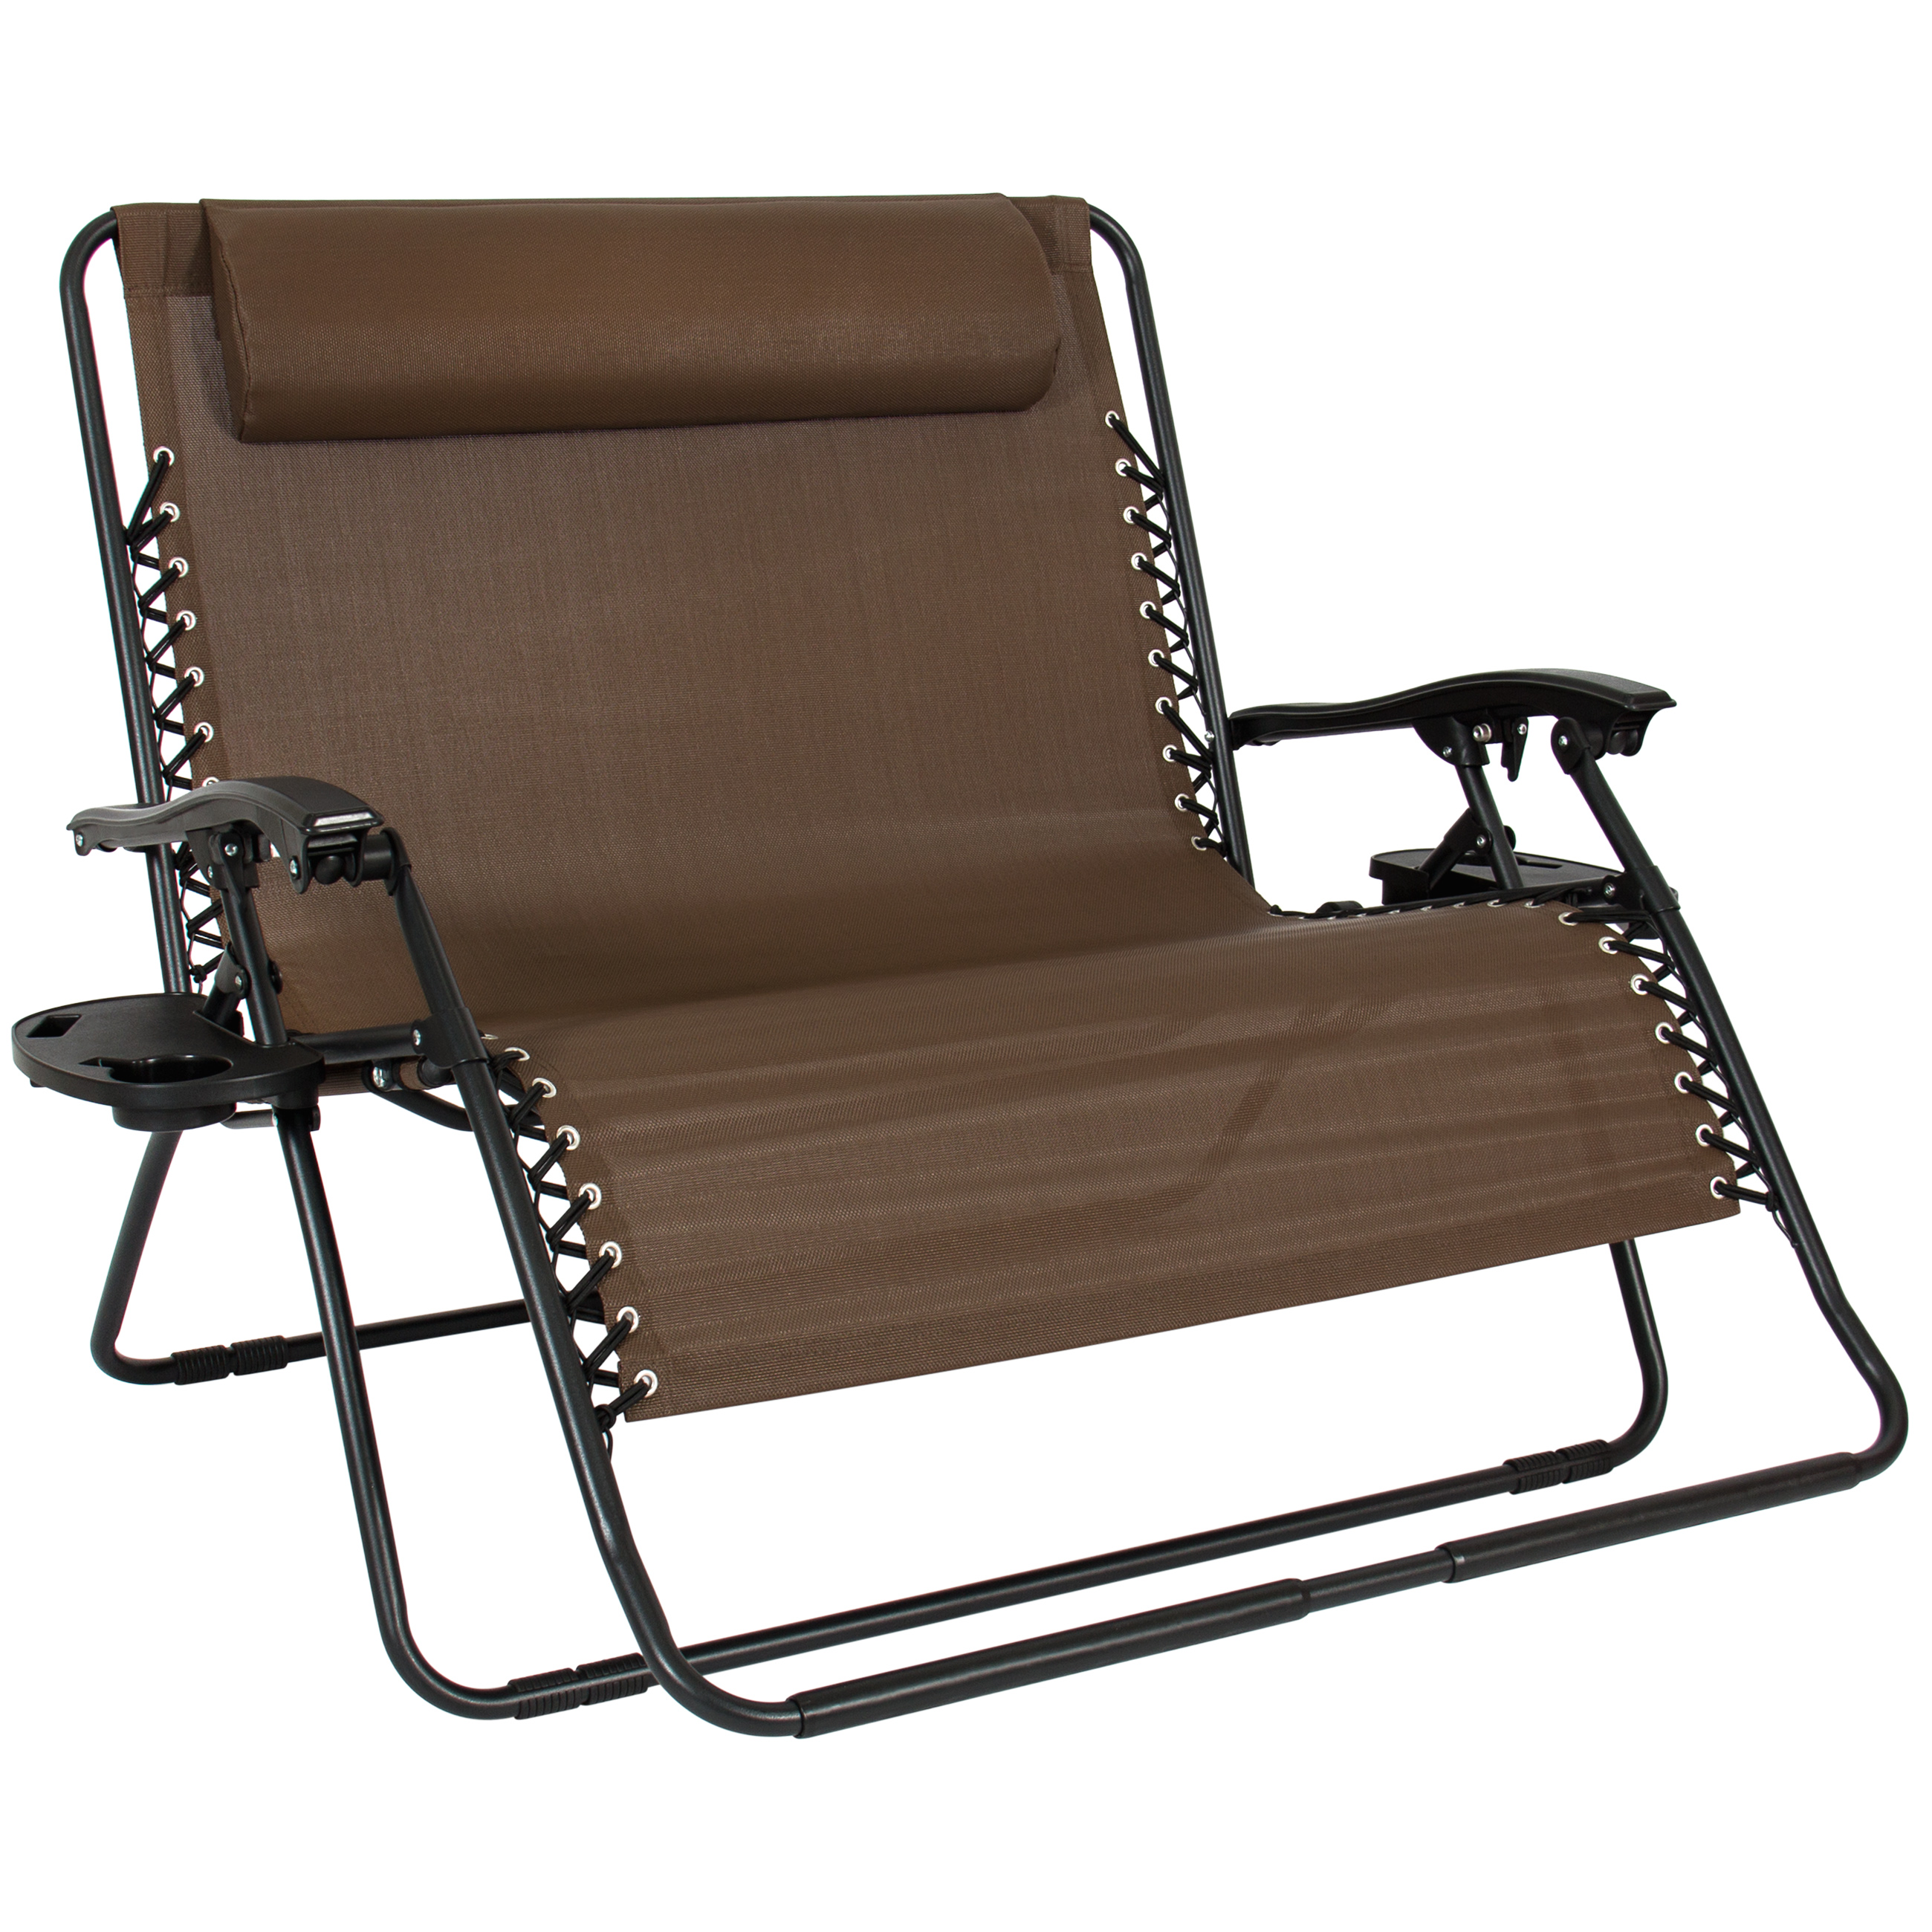 Folding 2 person oversized zero gravity lounge chair w 2 accessory trays brown ebay - Oversized zero gravity lounge chair ...